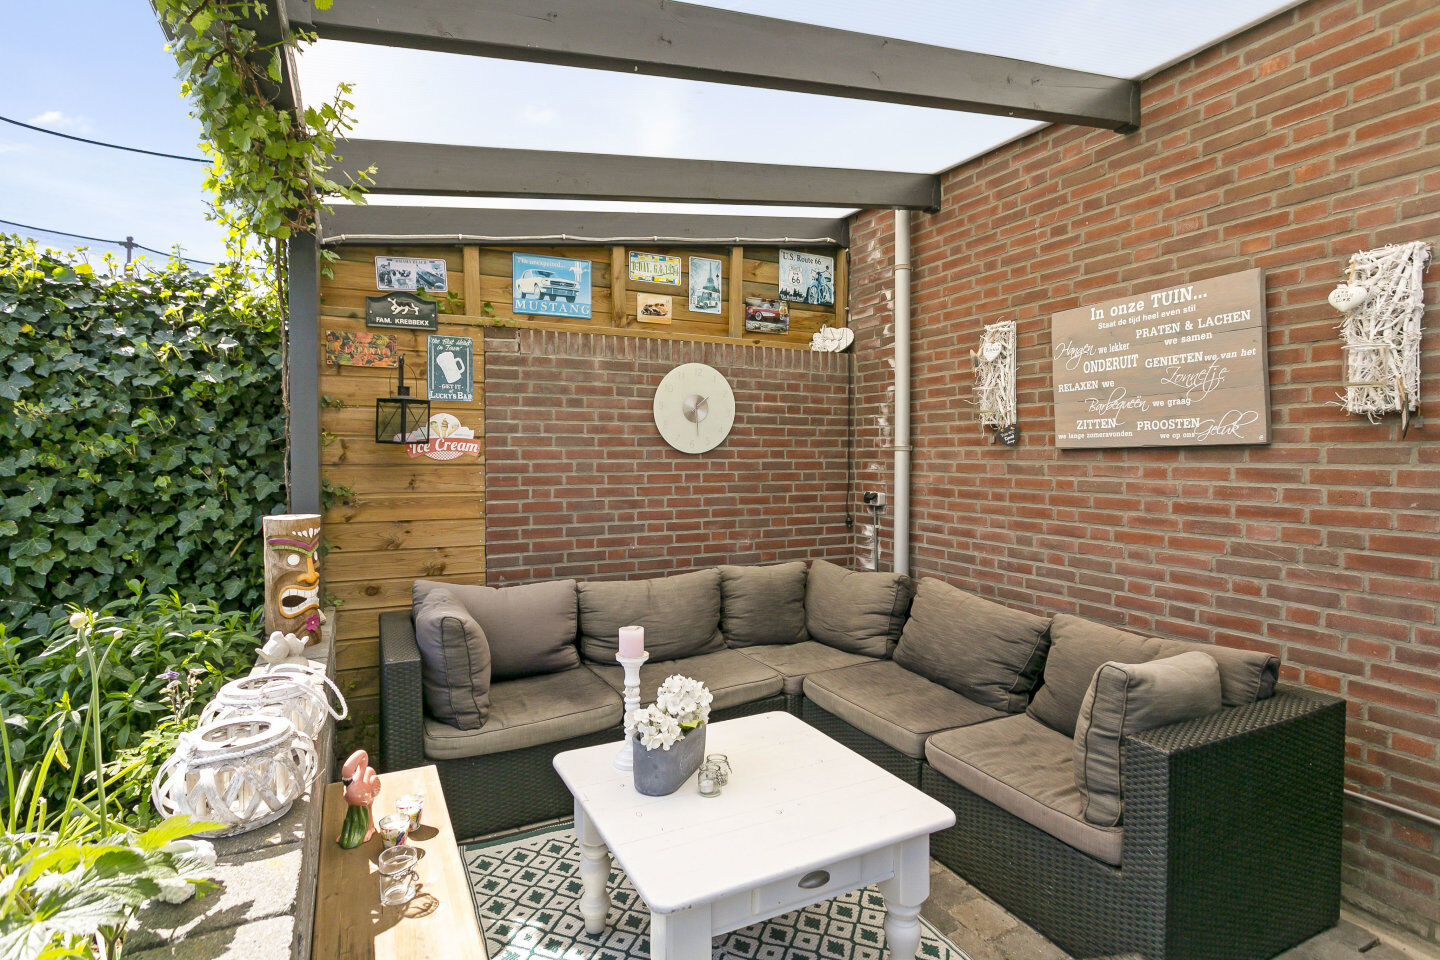 26583-philips_willemstraat_29-dinteloord-385828256